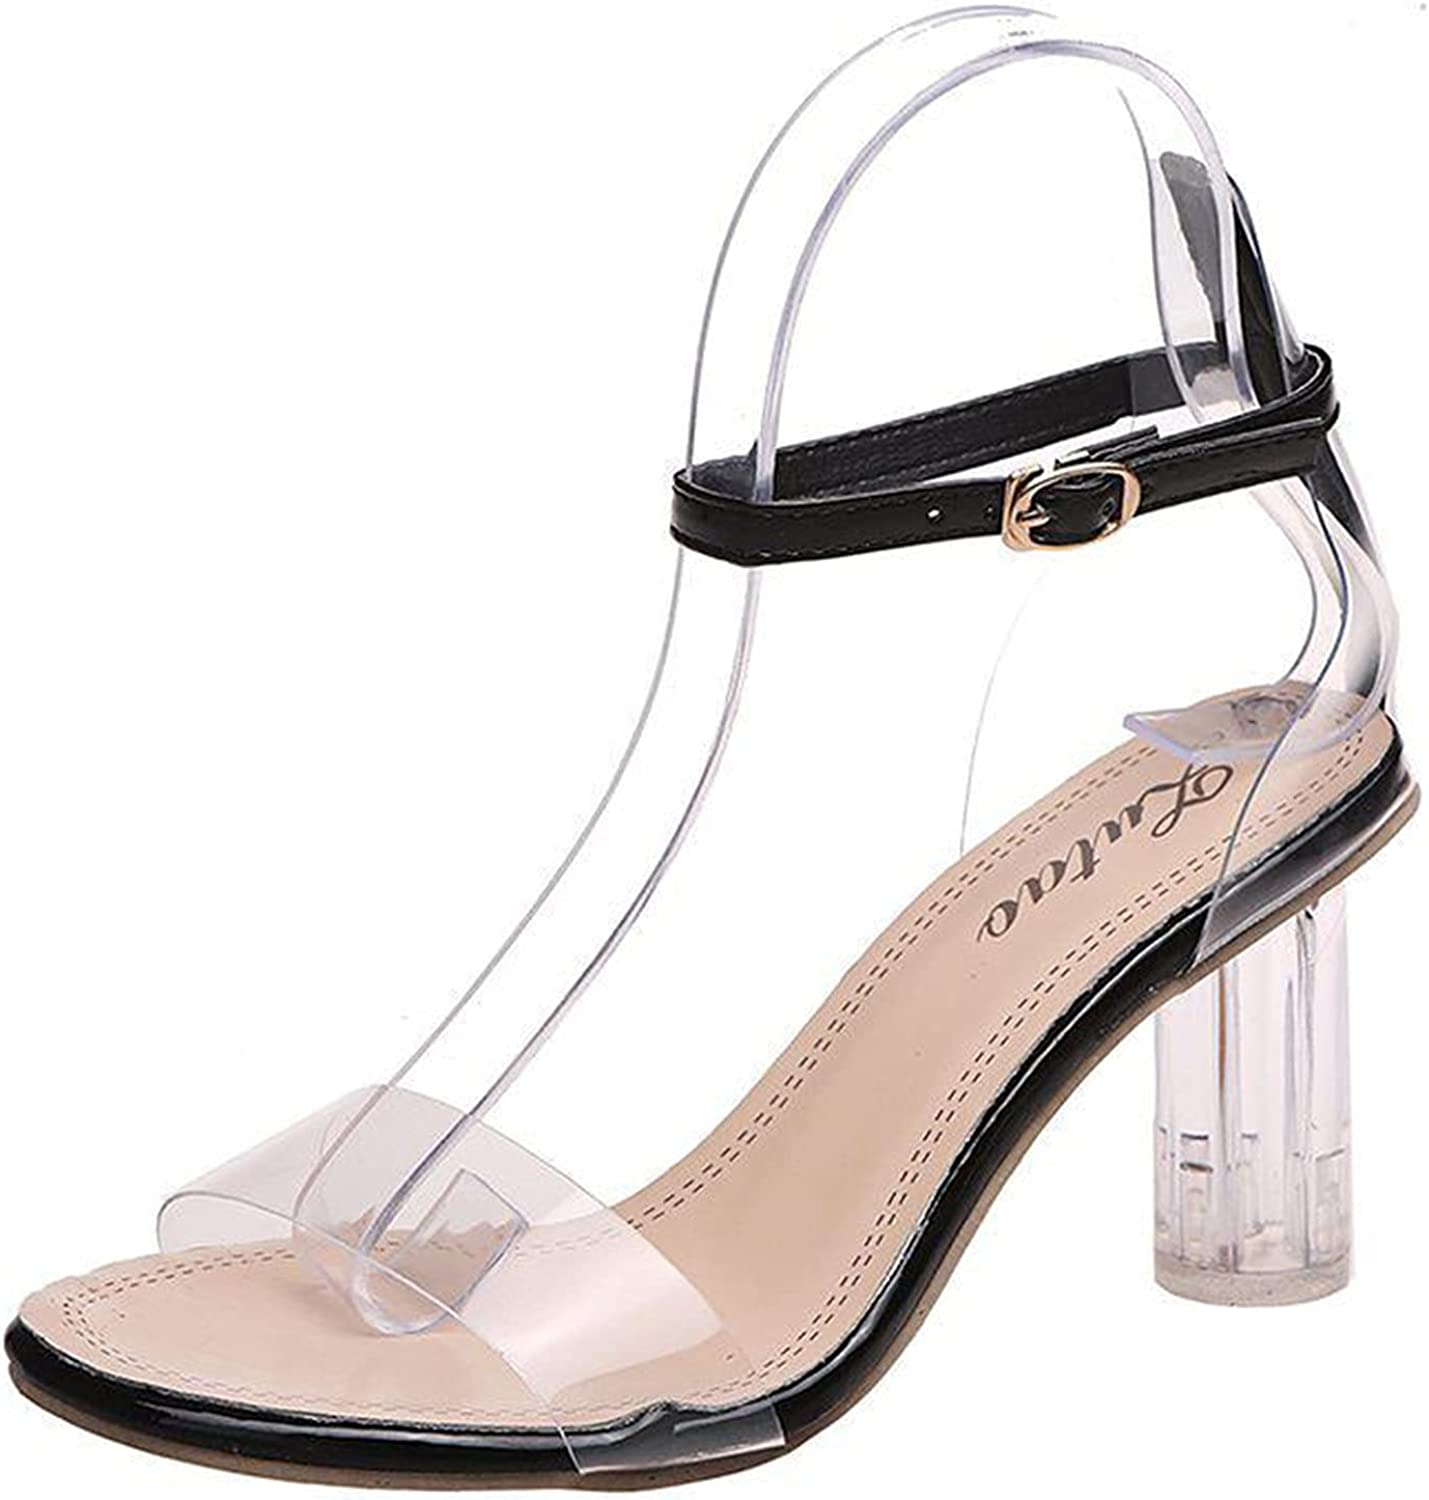 Gyouanime Transparent high Heels Dressy Heel Boston Mall Open Chunky Manufacturer direct delivery Wed Toe